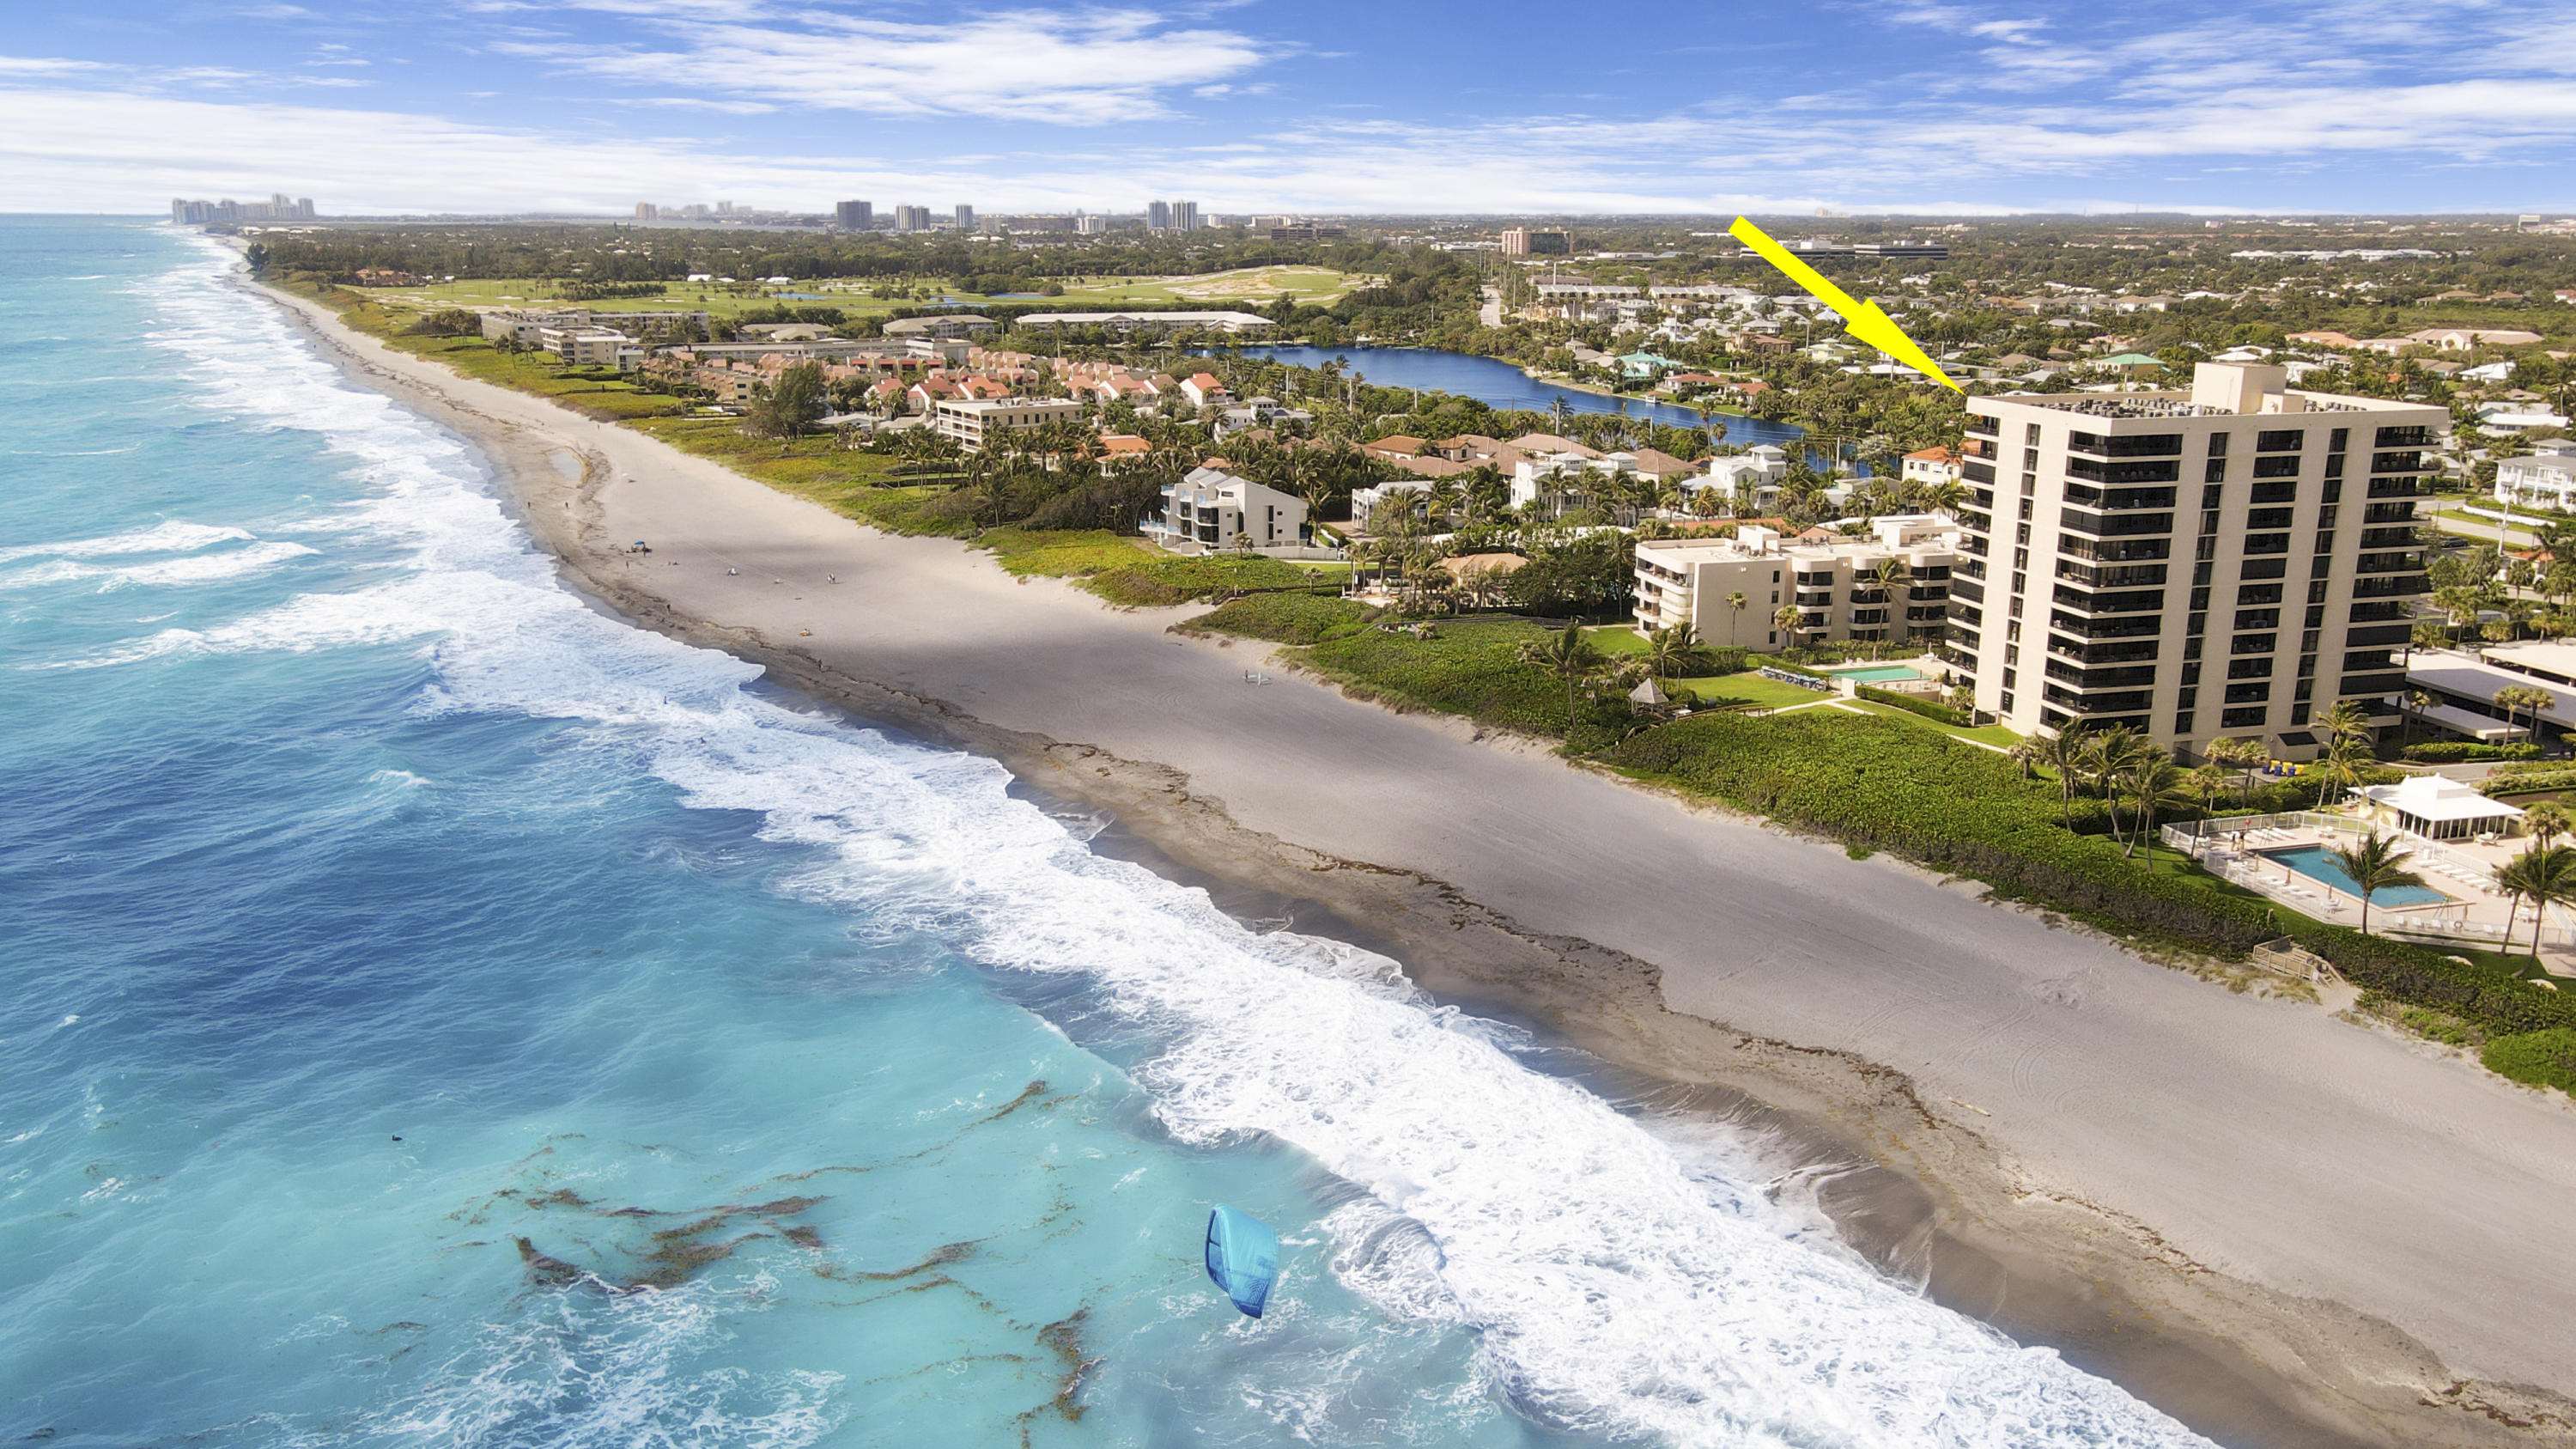 Rare find in Juno Beach! This 2/2 southeast corner condo offers unobstructed and some of the most breathtaking, panoramic views of Juno beach and beyond! Enjoy the scenic views from oversized private balcony or abundant living area. Complete with all hurricane doors and windows. Nice new tile floors though out. A/C and water heater 4 years old. Beautifully maintained and move in ready.  Juno Ocean Club is ideally located in the heart of Juno Beach and close to all major shopping, Highways and PBI. Being sold as is all you need is your bathing suit and toothbrush!